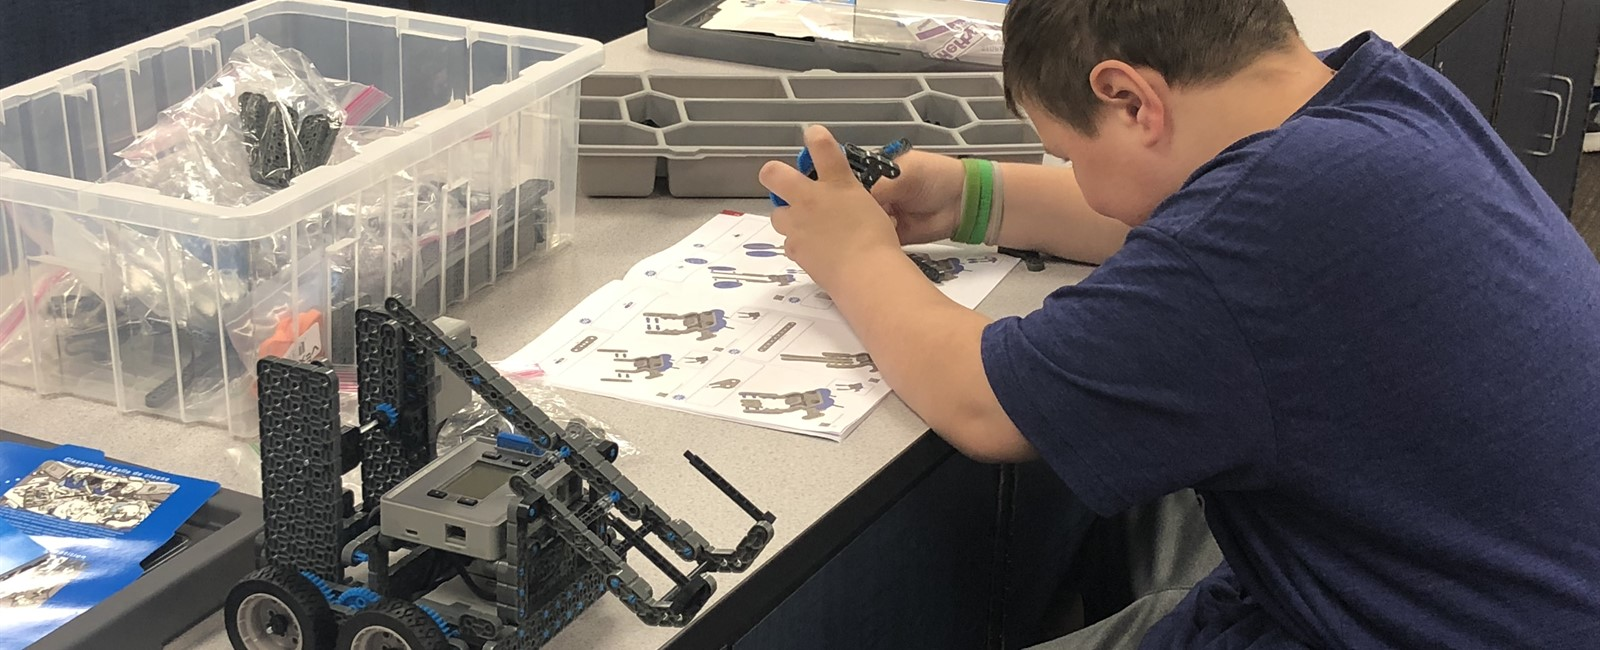 Sebring McKinley Junior High School offers robotics.